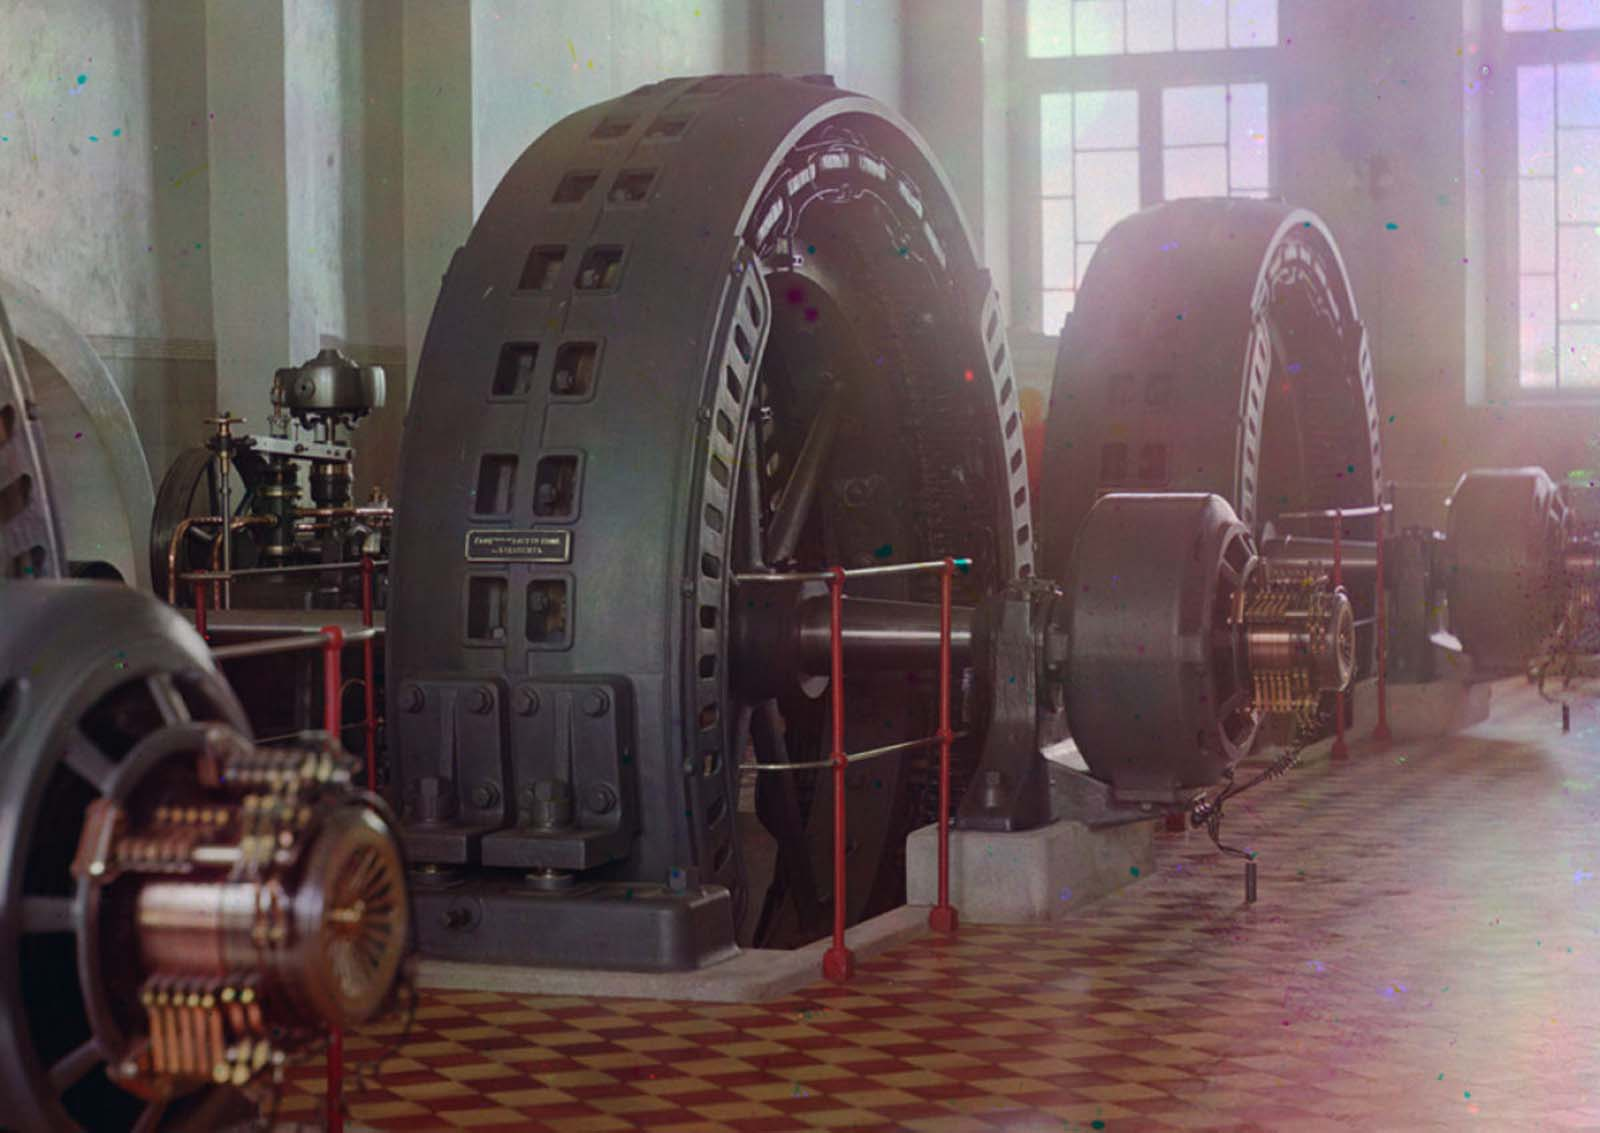 Alternators made in Budapest, Hungary, in the power generating hall of a hydroelectric station in Iolotan (Eloten), Turkmenistan, on the Murghab River, 1910.